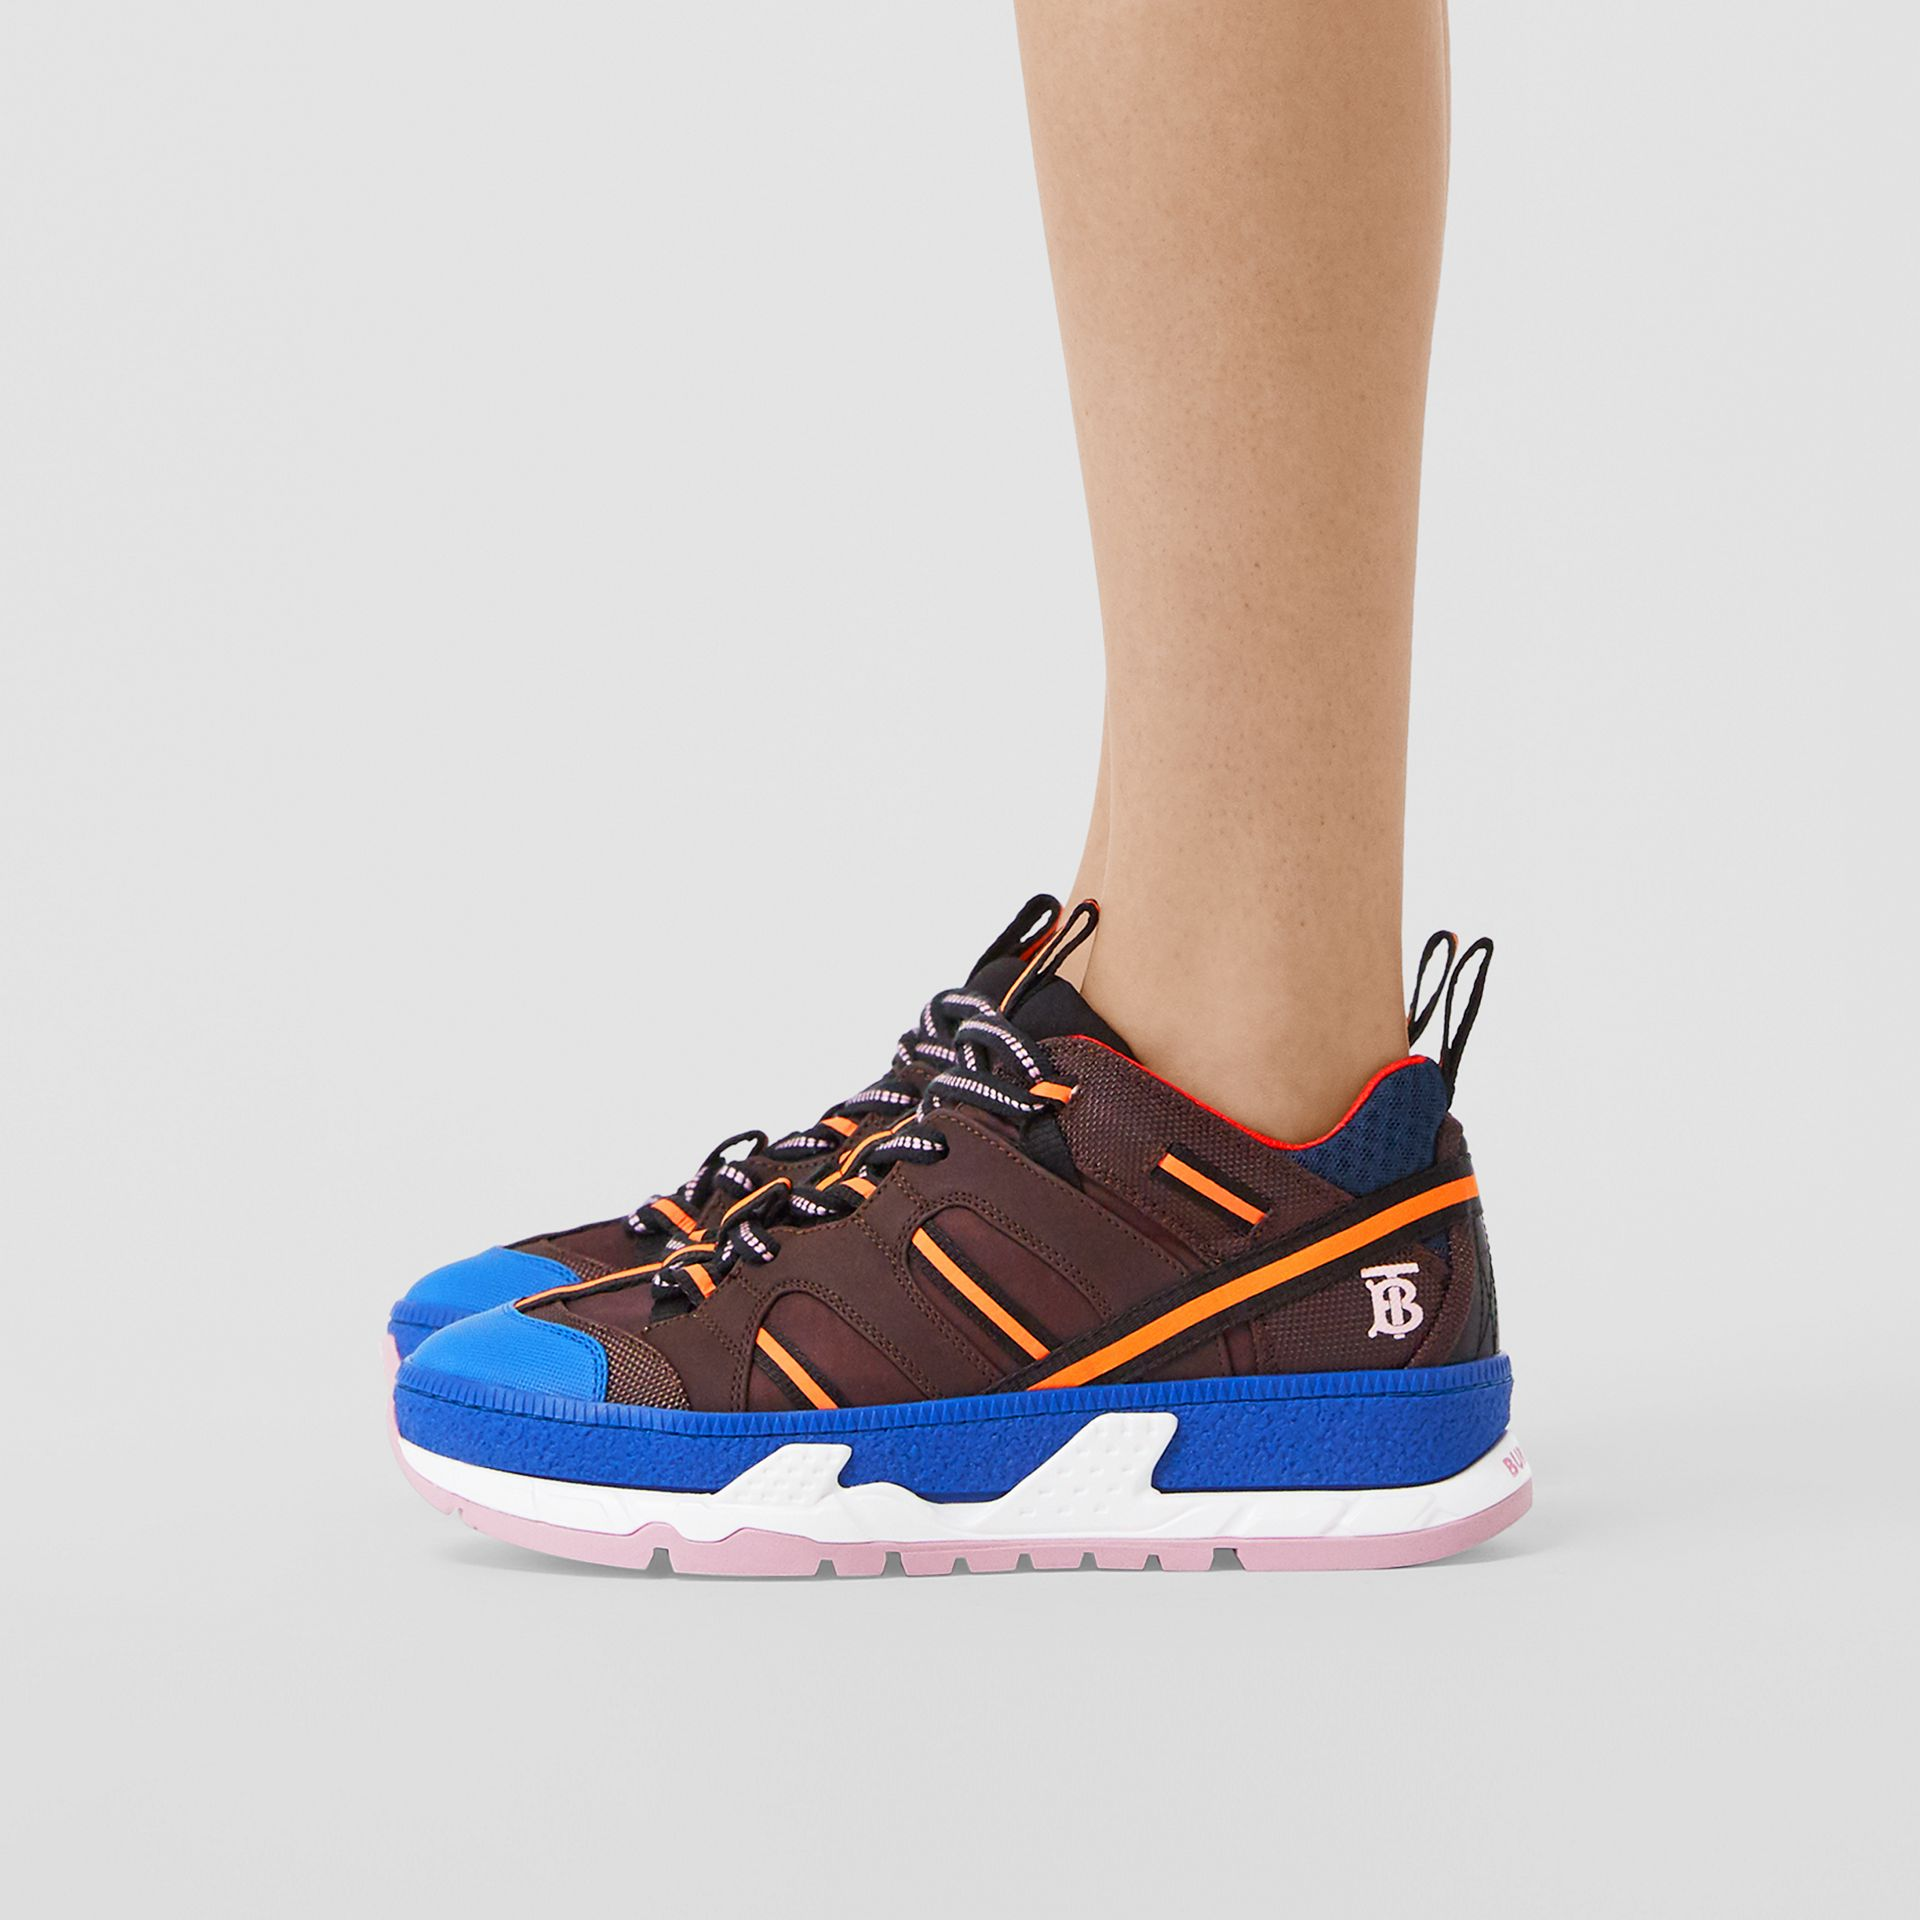 Nylon and Mesh Union Sneakers in Coffee/blue - Women | Burberry Canada - gallery image 2